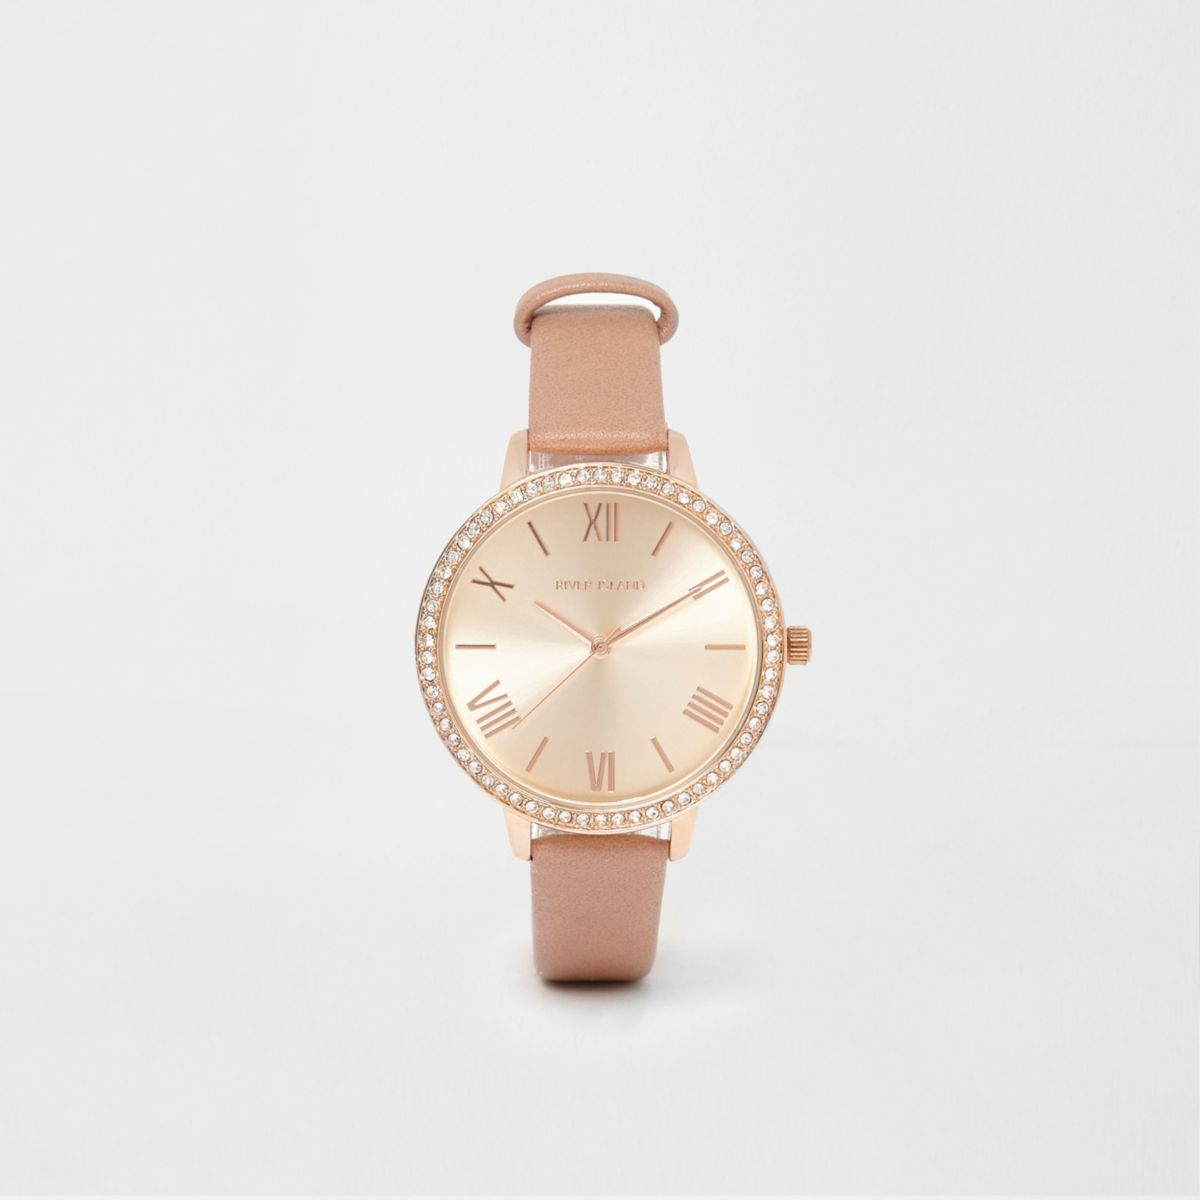 Beige and rose gold tone diamante watch